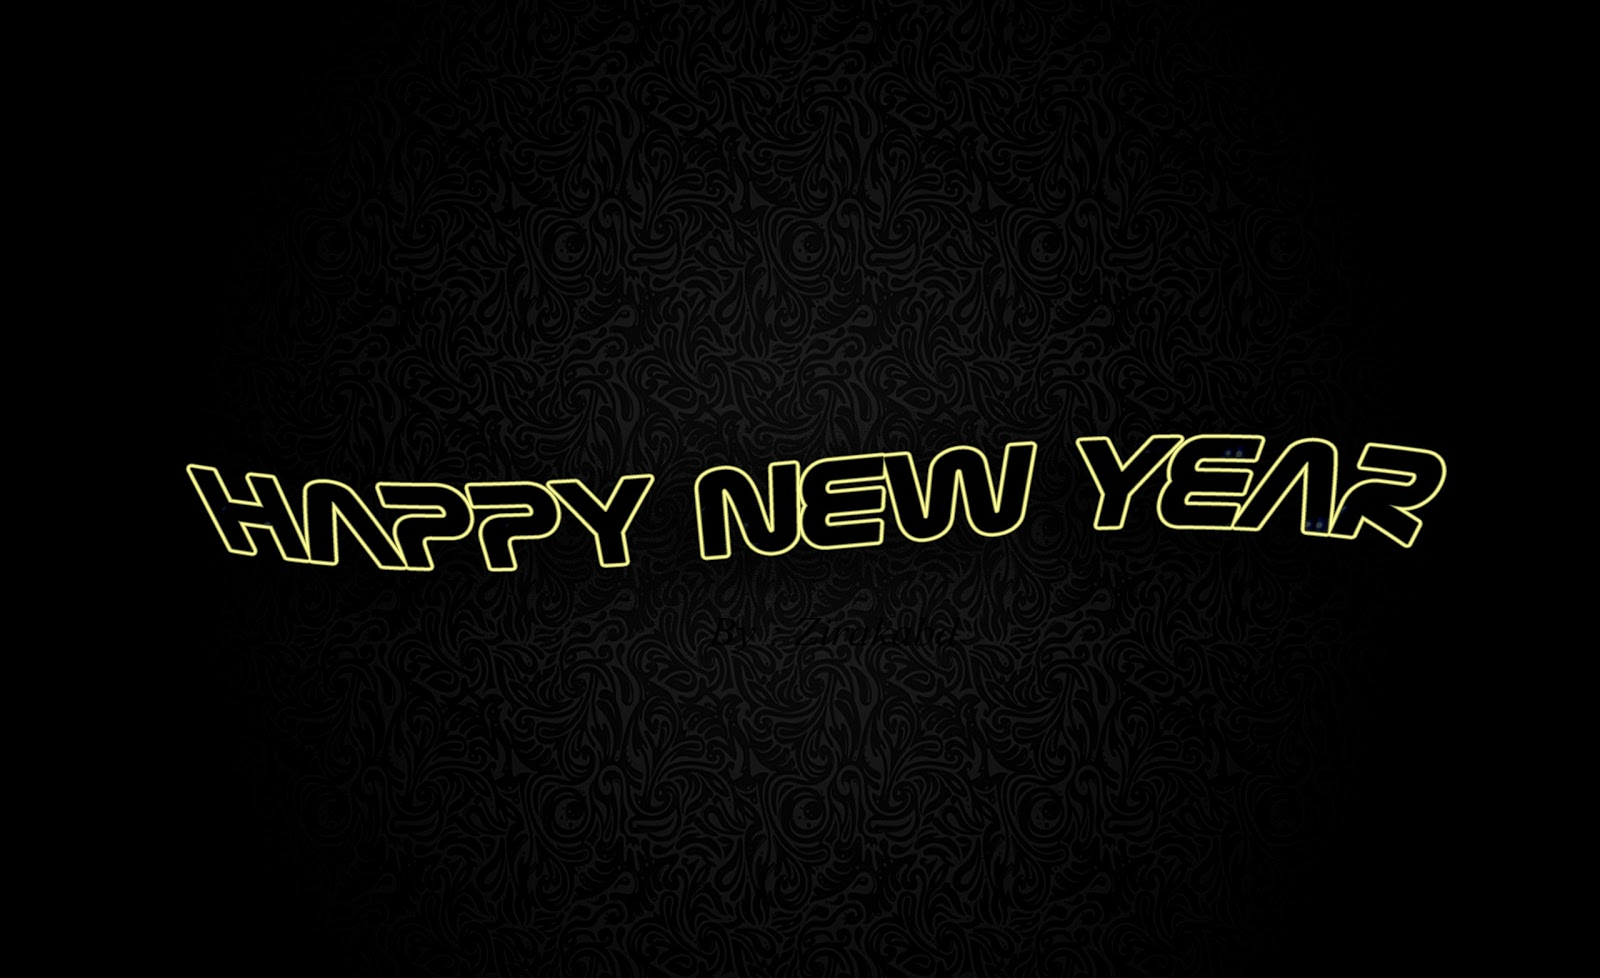 http://4.bp.blogspot.com/-08Q2GjcbiWU/UMeMZGruCbI/AAAAAAAAAvY/--c0jEpm0M4/s1600/Happy+New+Year+HD+Wallpaper+Collection+%25282%2529.jpg